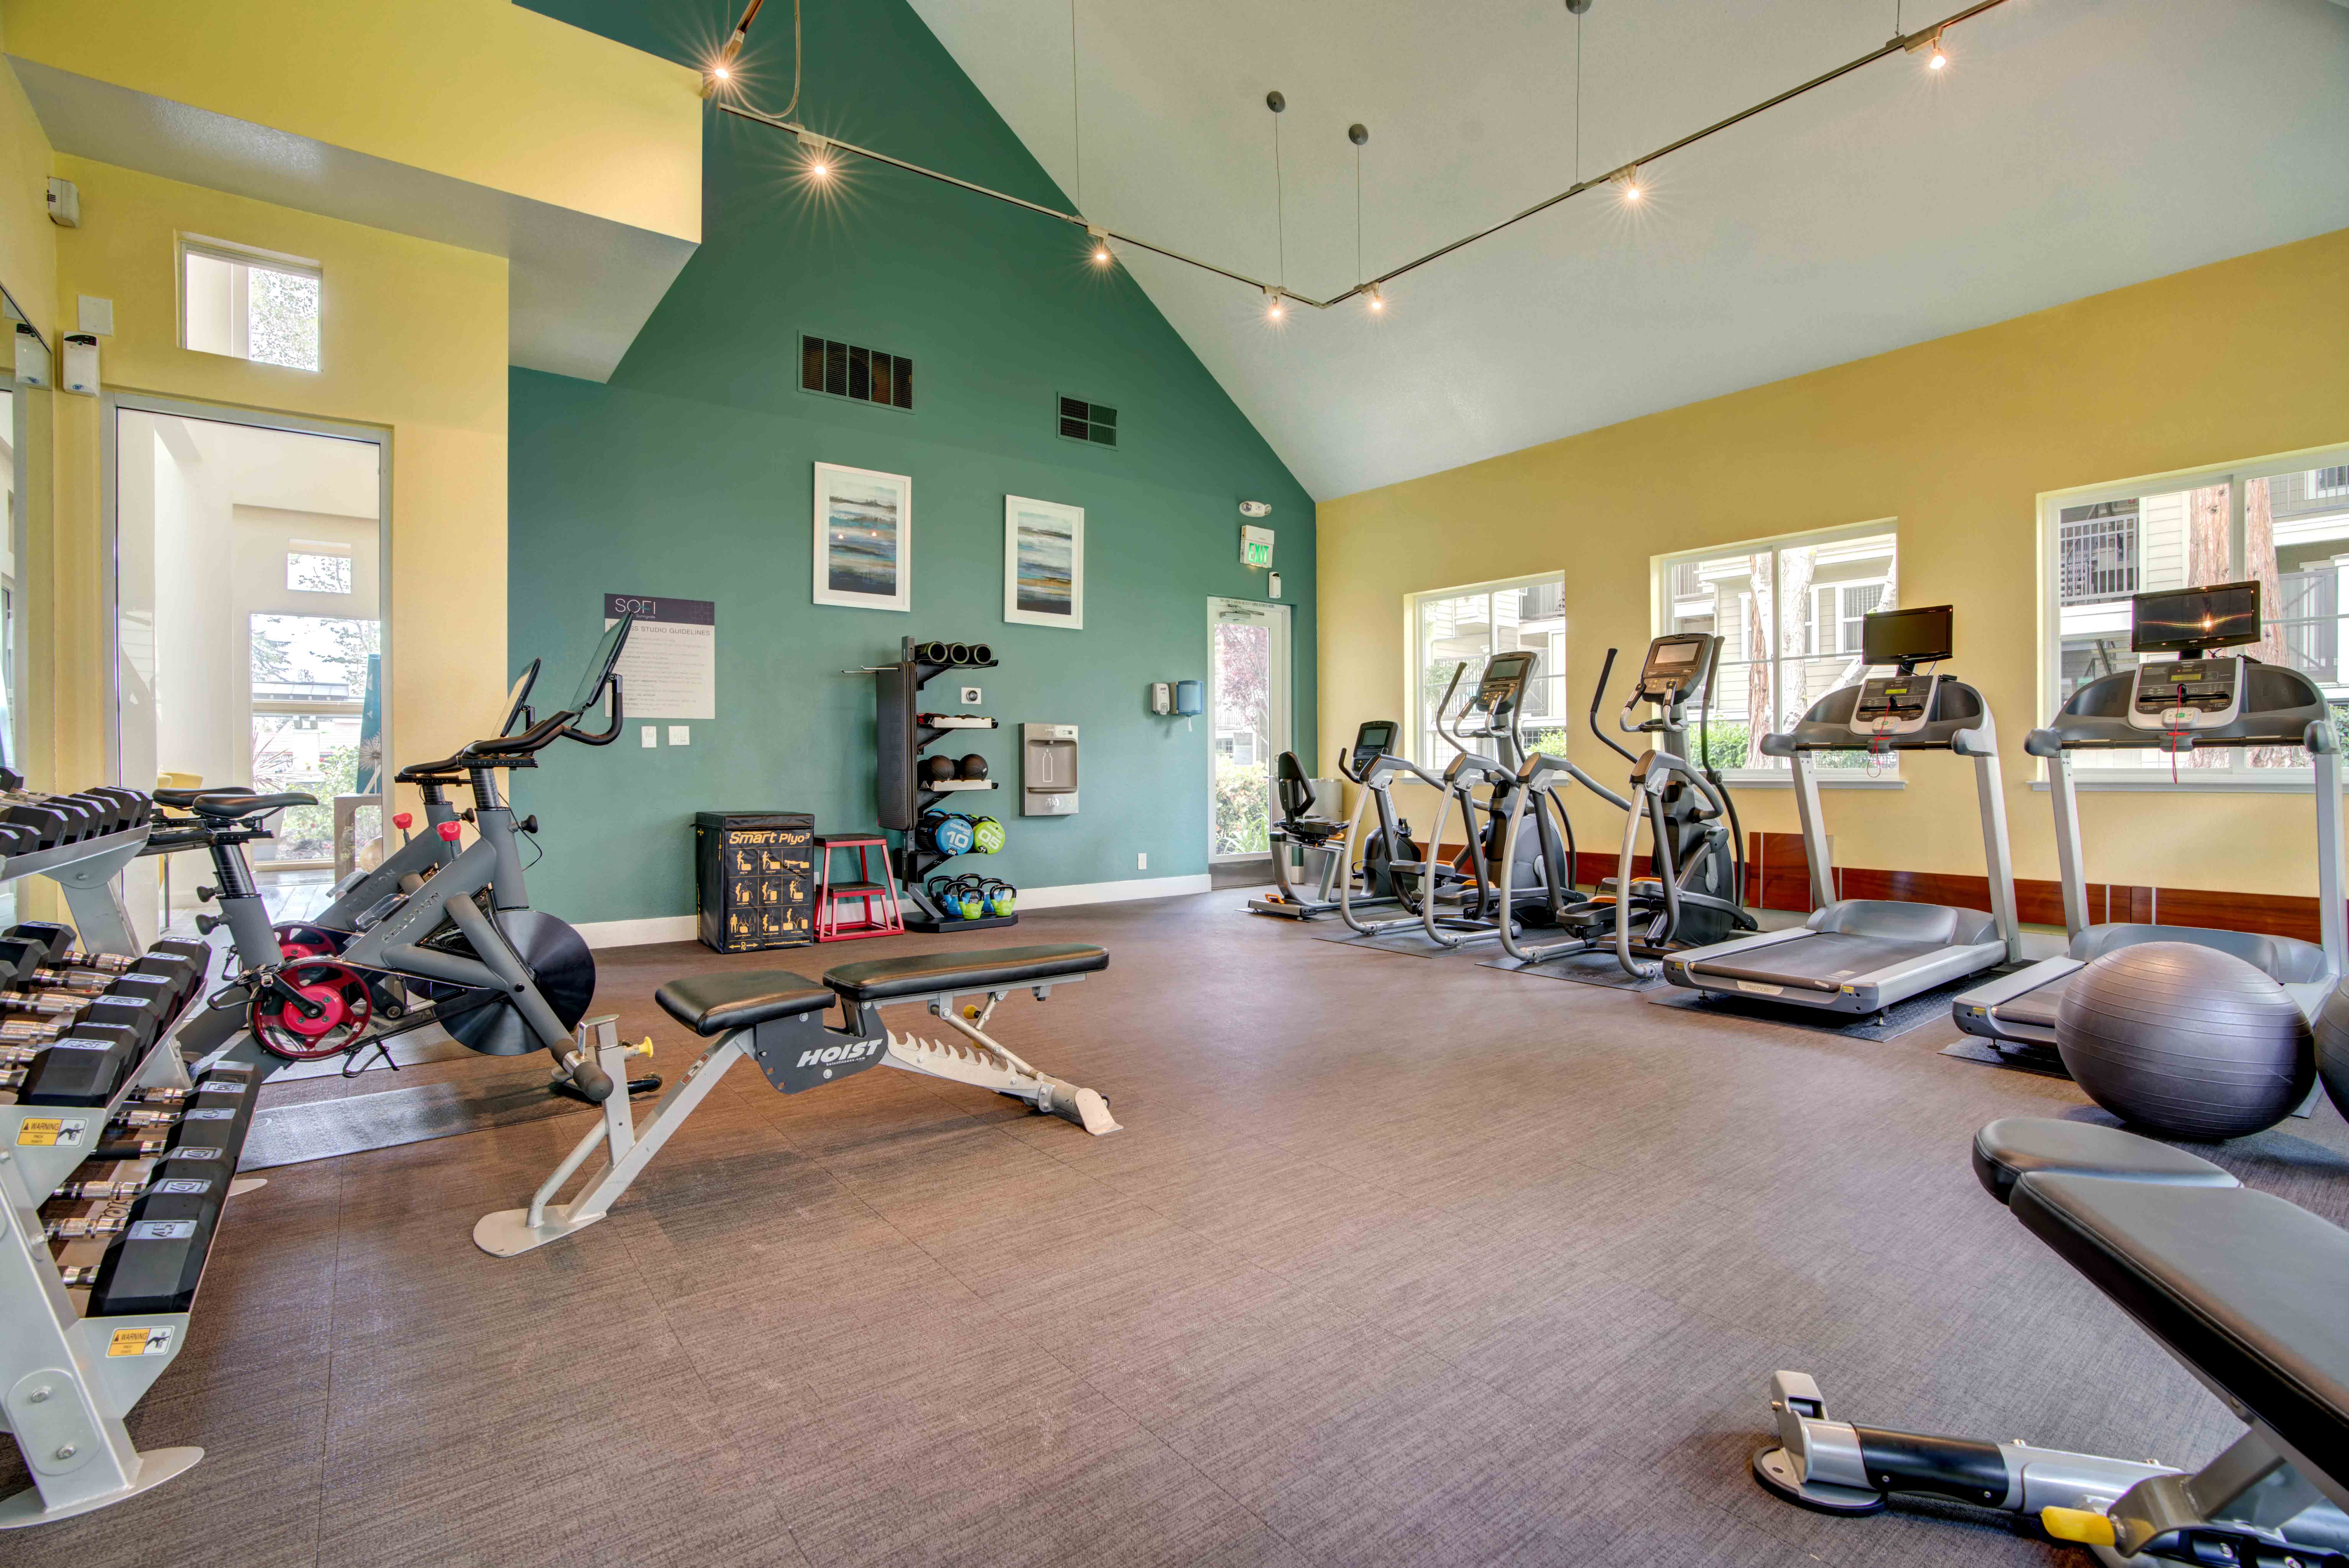 Onsite fitness center at Sofi Sunnyvale in Sunnyvale, California